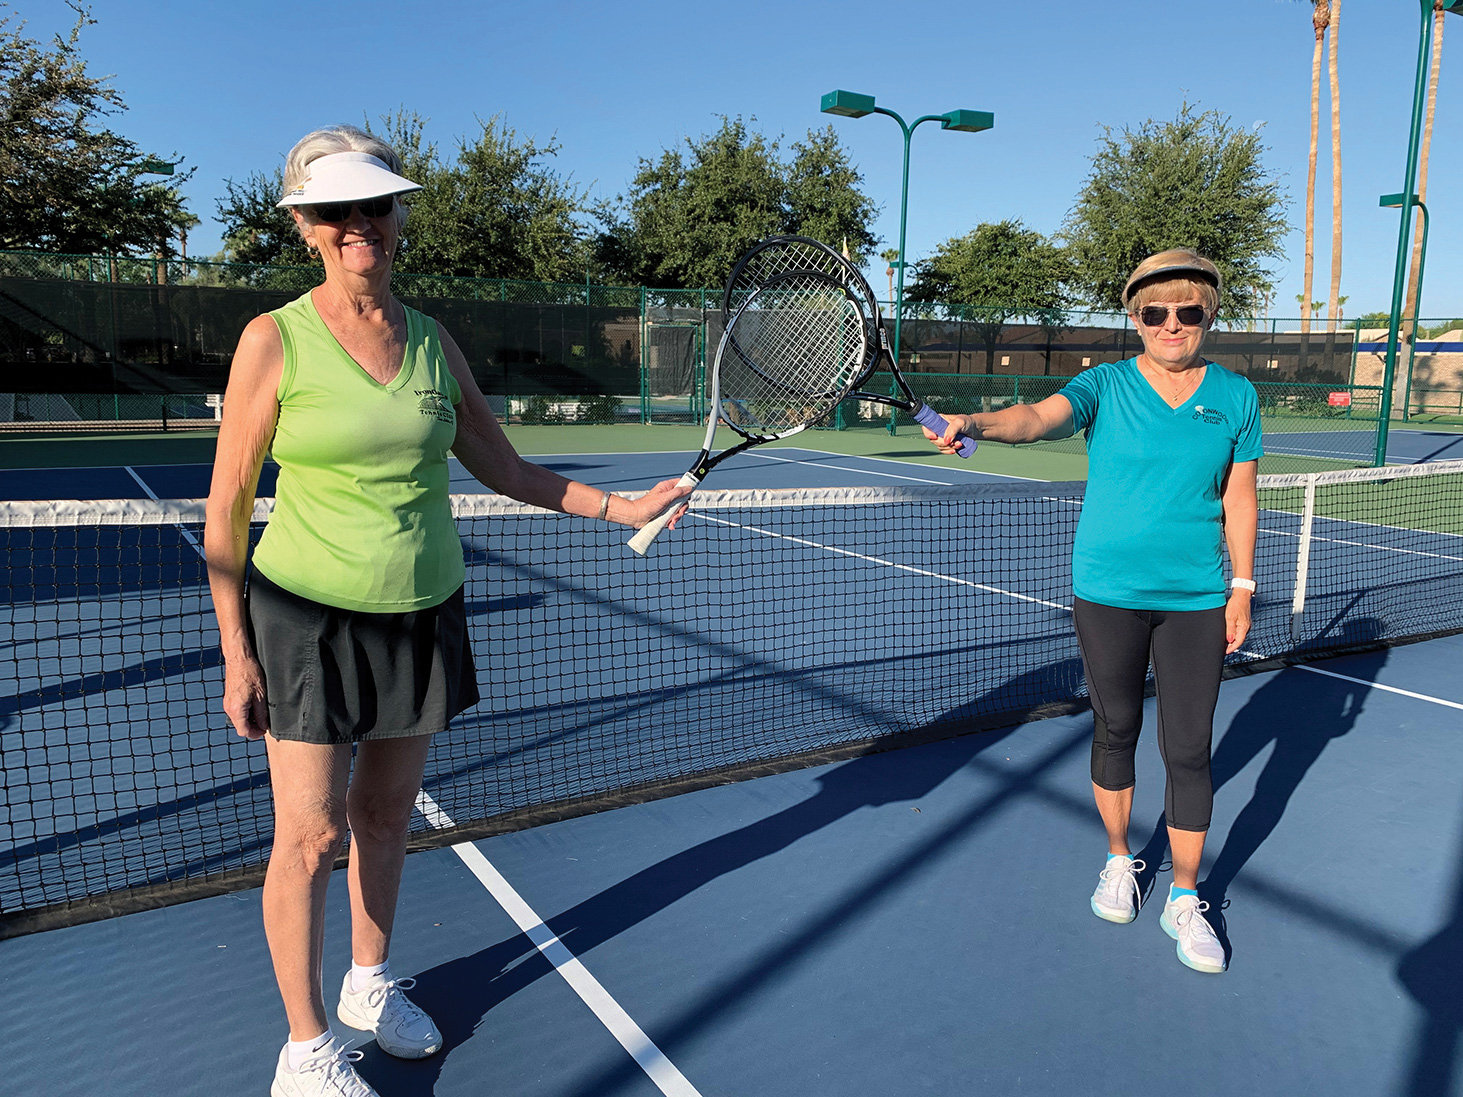 Vivian Guimond and Edith Tanniru warm up for the tennis mixer while social distancing.